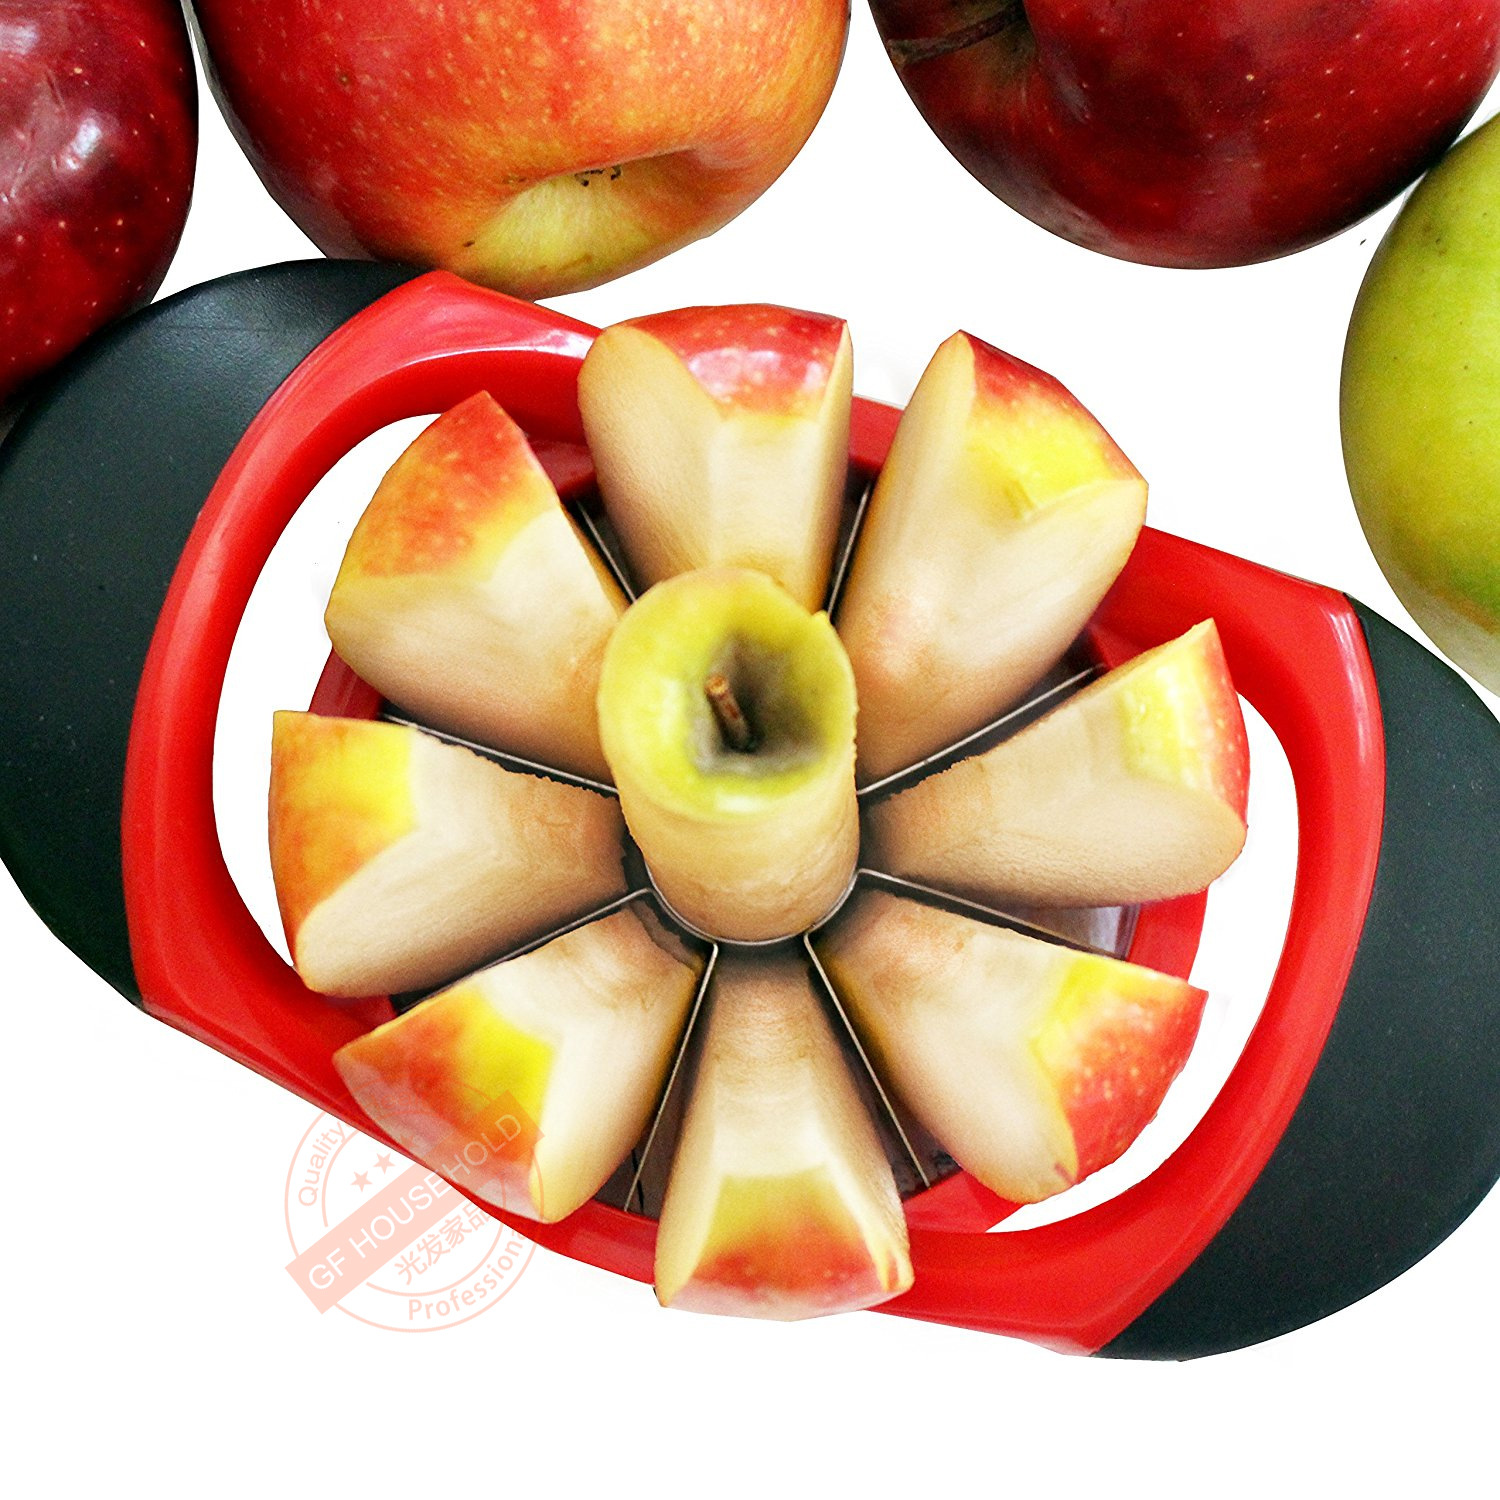 Amazon Stainless Steel Coring Knife From Your Apple Fruit-cuttng Device Fruit Splitter Apple Slicer